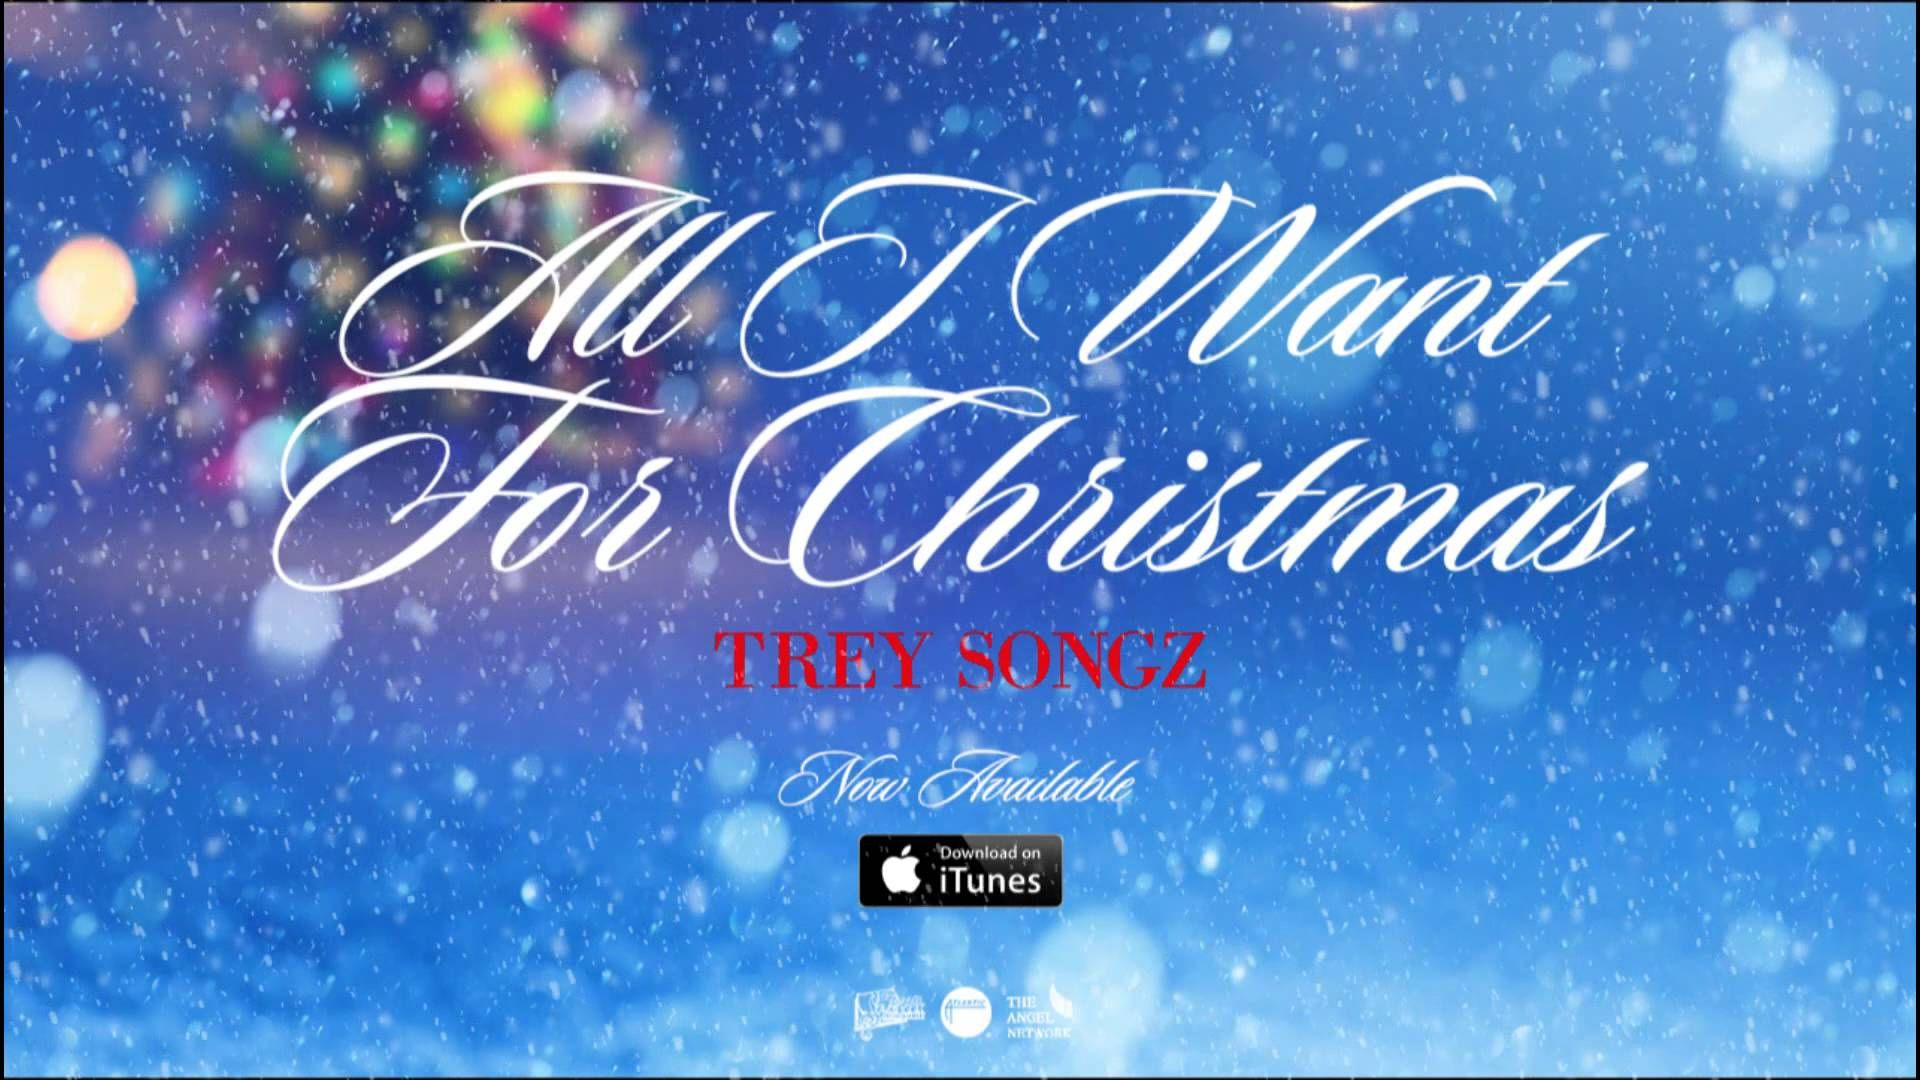 Trey Songz All I Want For Christmas Official Audio Https Www Youtube Com Watch V Fl P5ztbo1i Classic Christmas Songs Trey Songz R B Soul Music